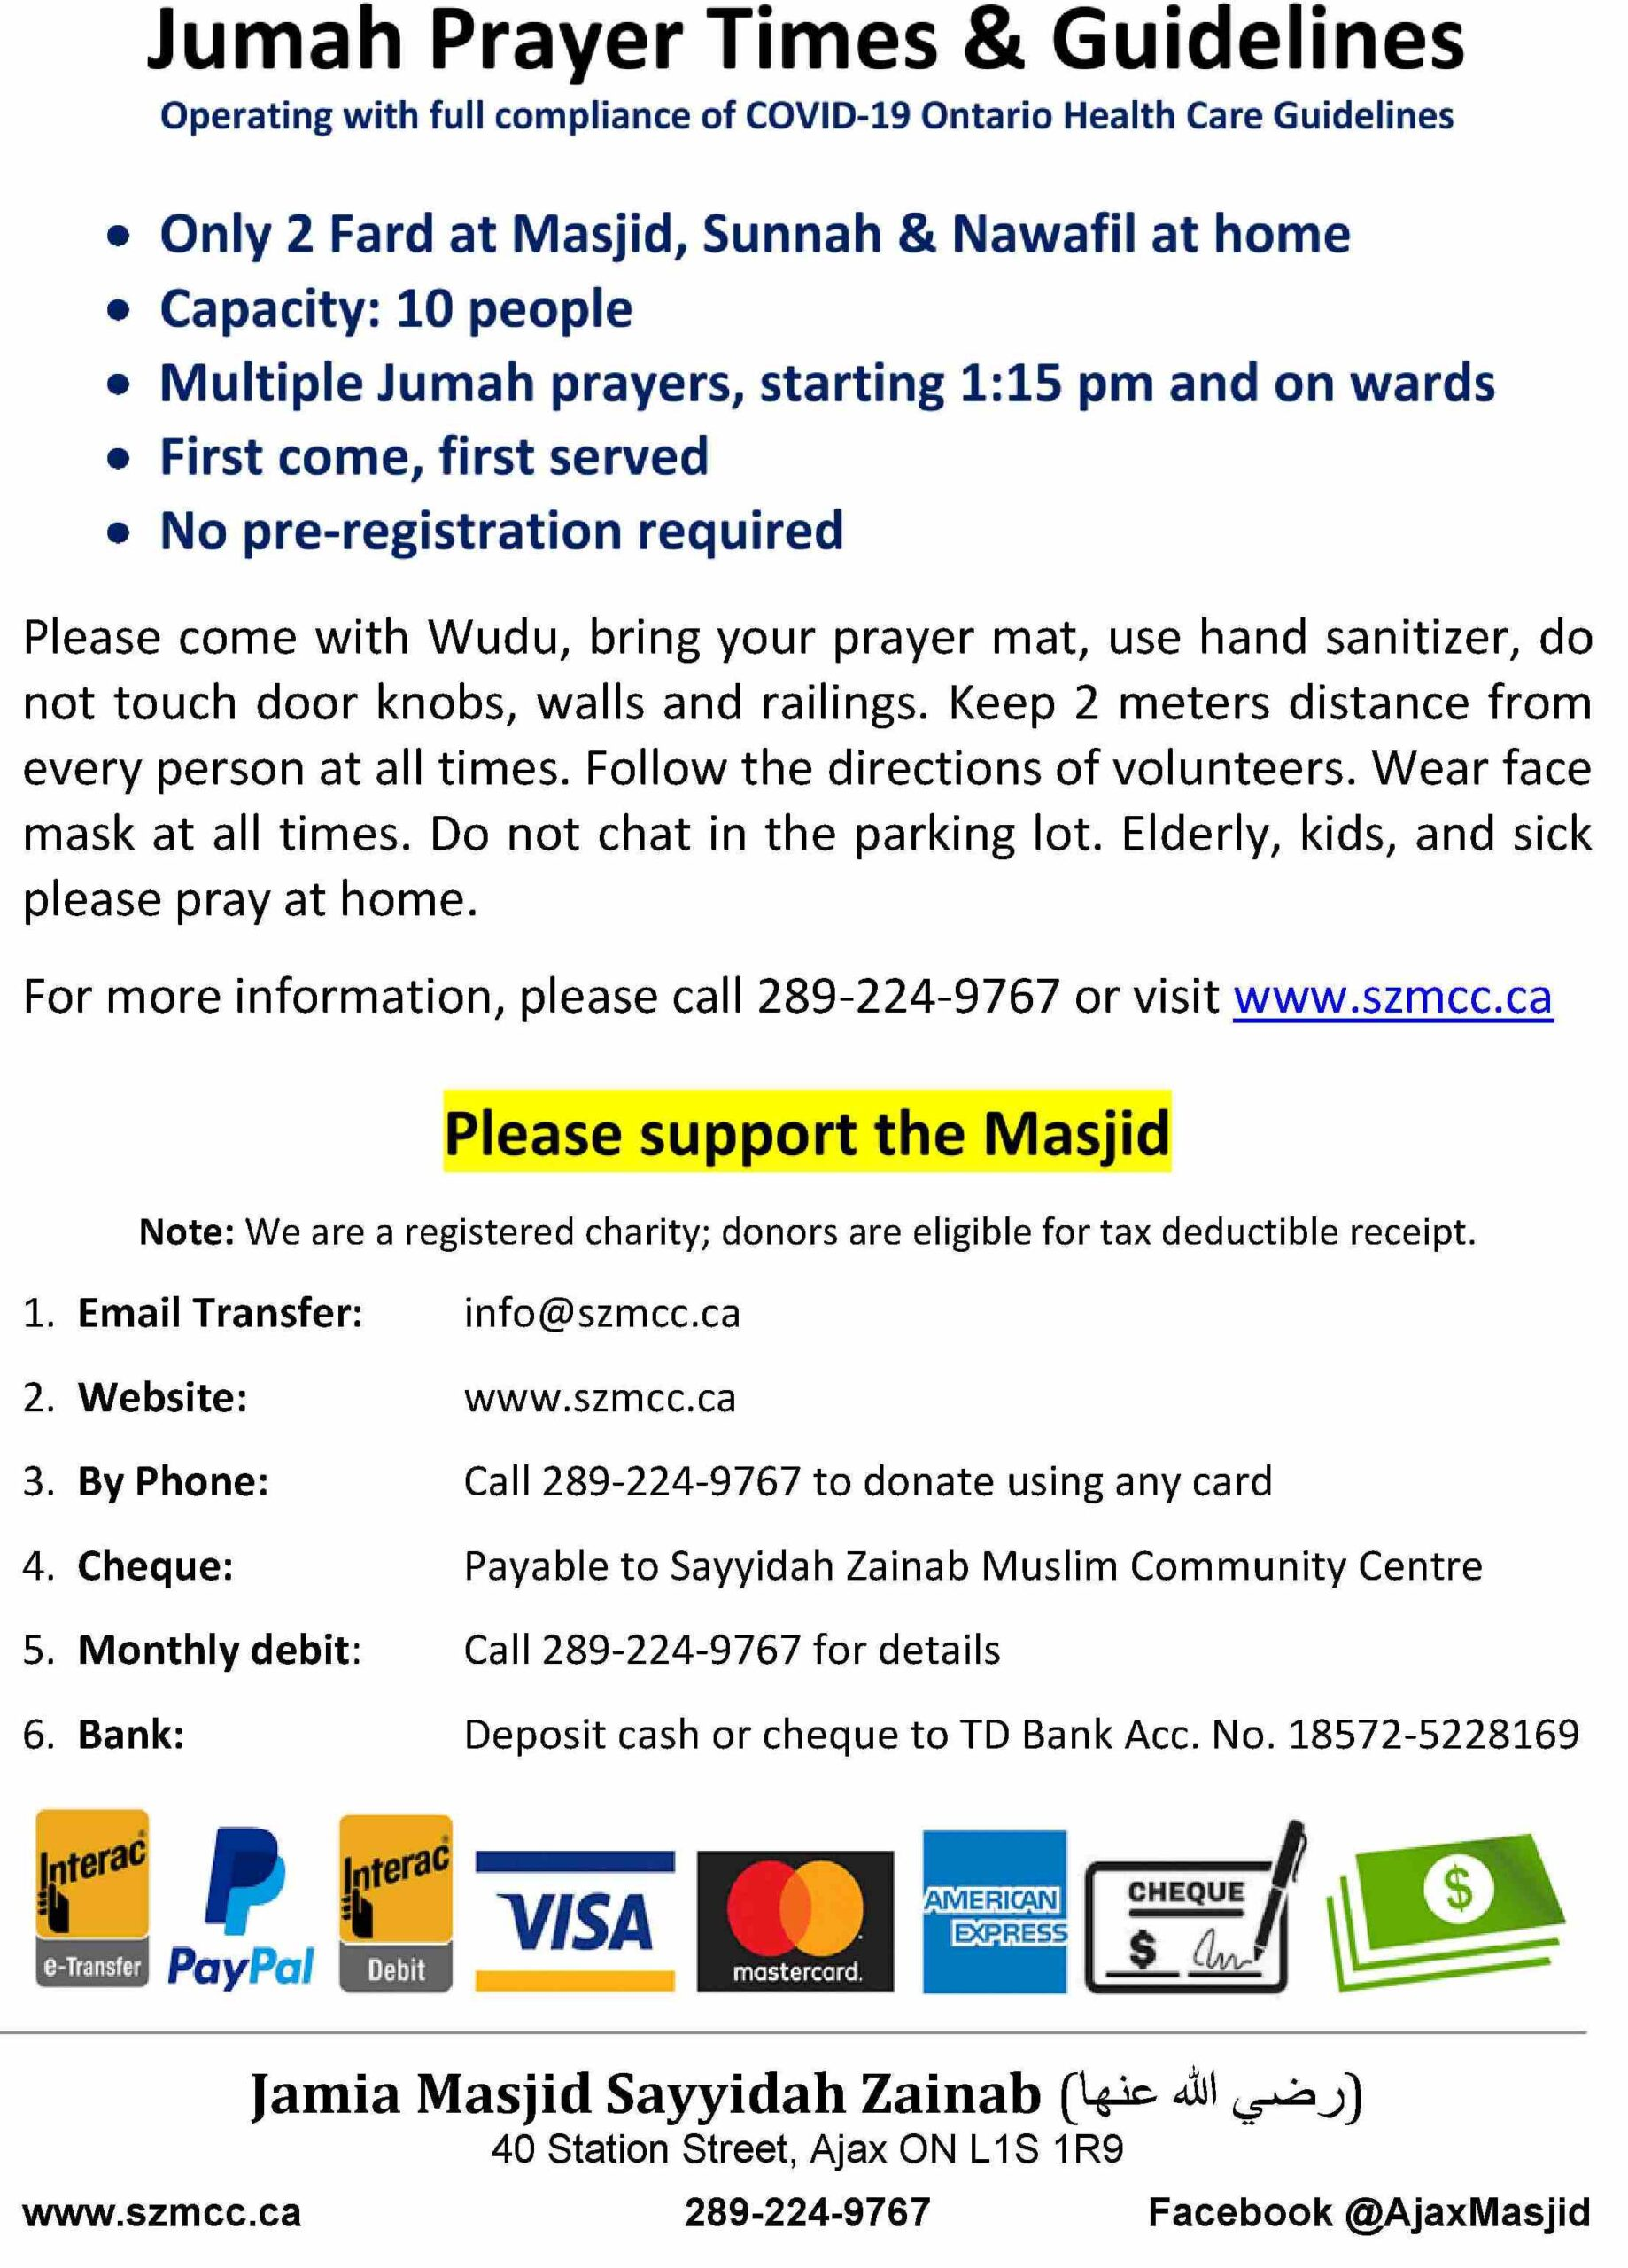 Friday Prayer Times & Guidelines